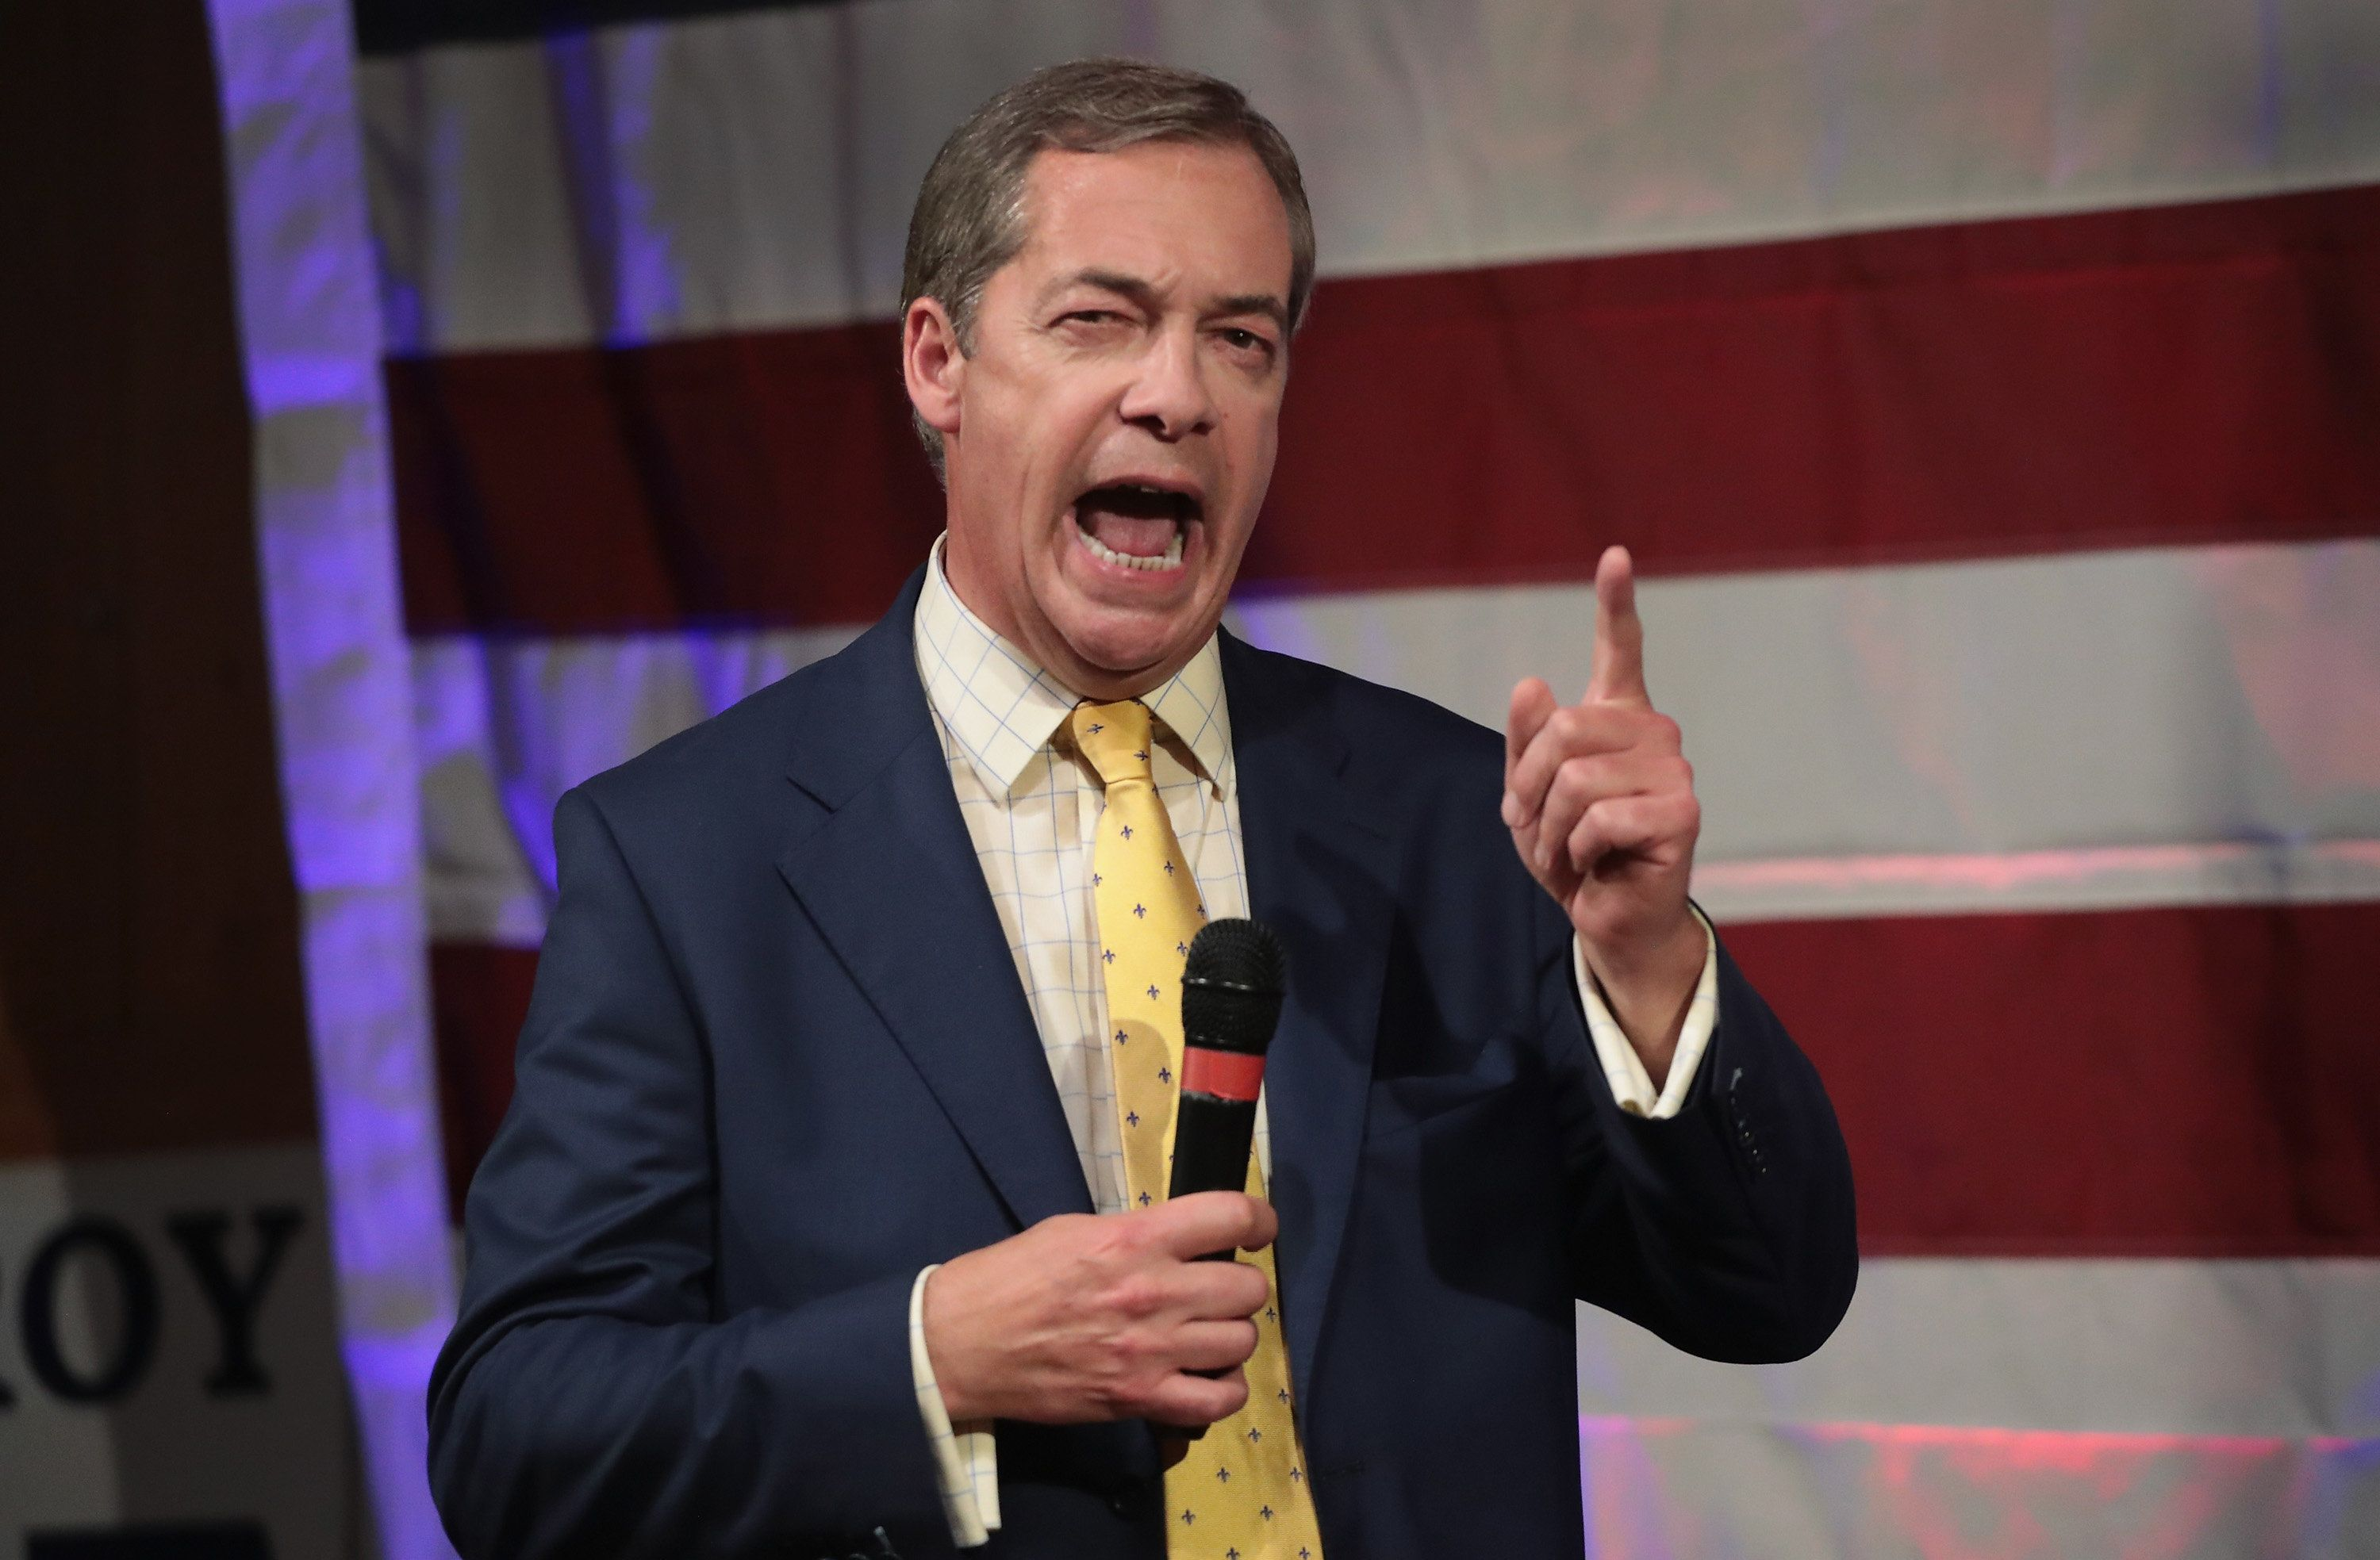 Nigel Farage Claims Donald Trump Had No Idea Who Britain First Were When He Retweeted